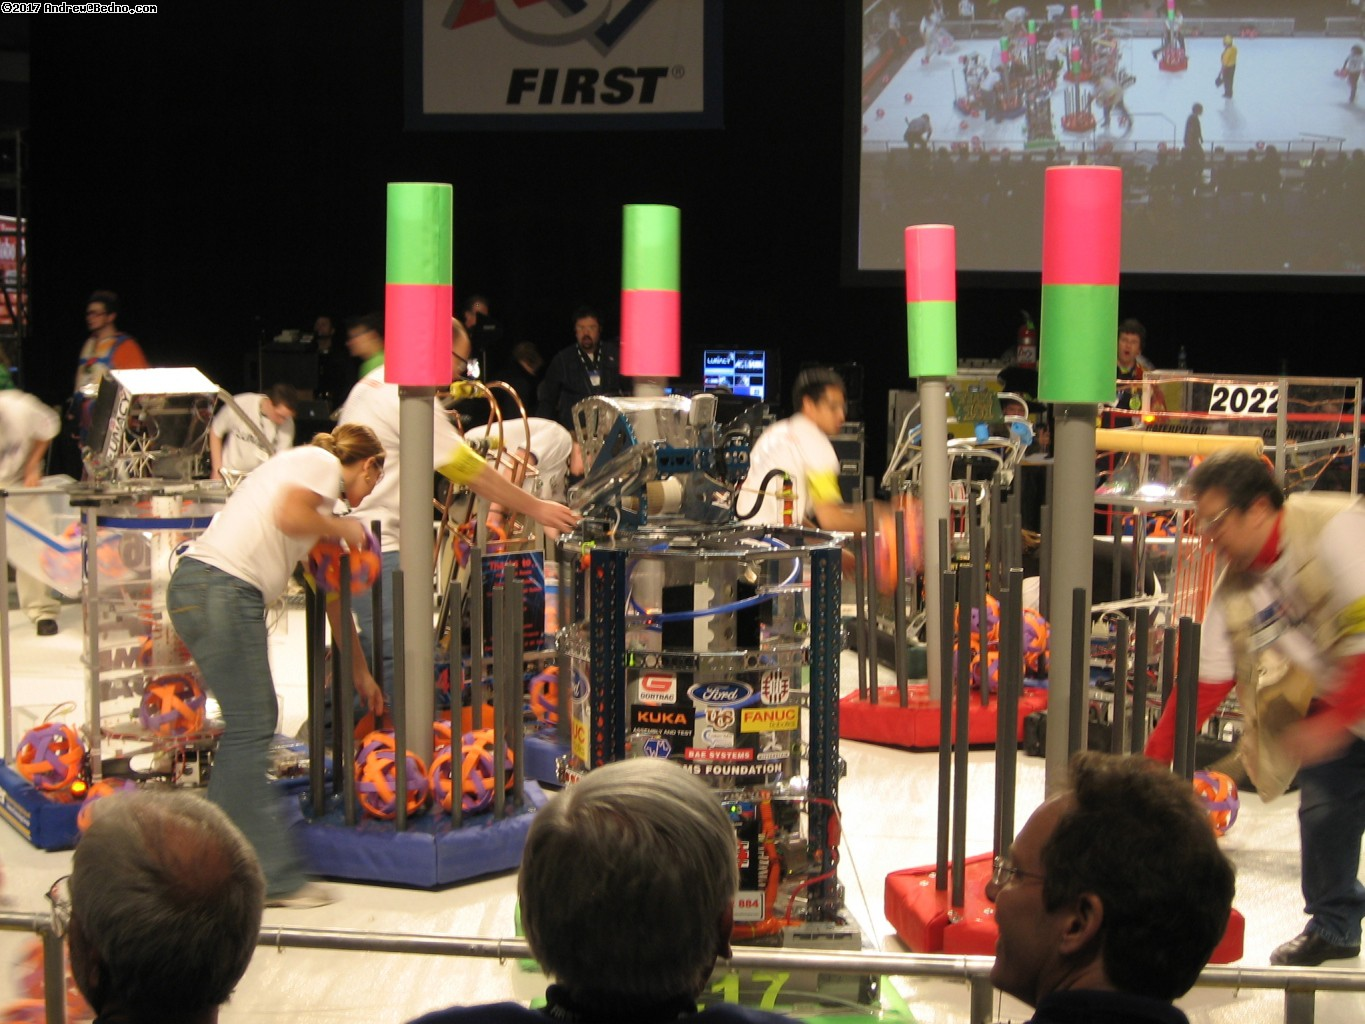 F.I.R.S.T. Robotics Competition Regionals at UIC Pavilion. (click for next photo)